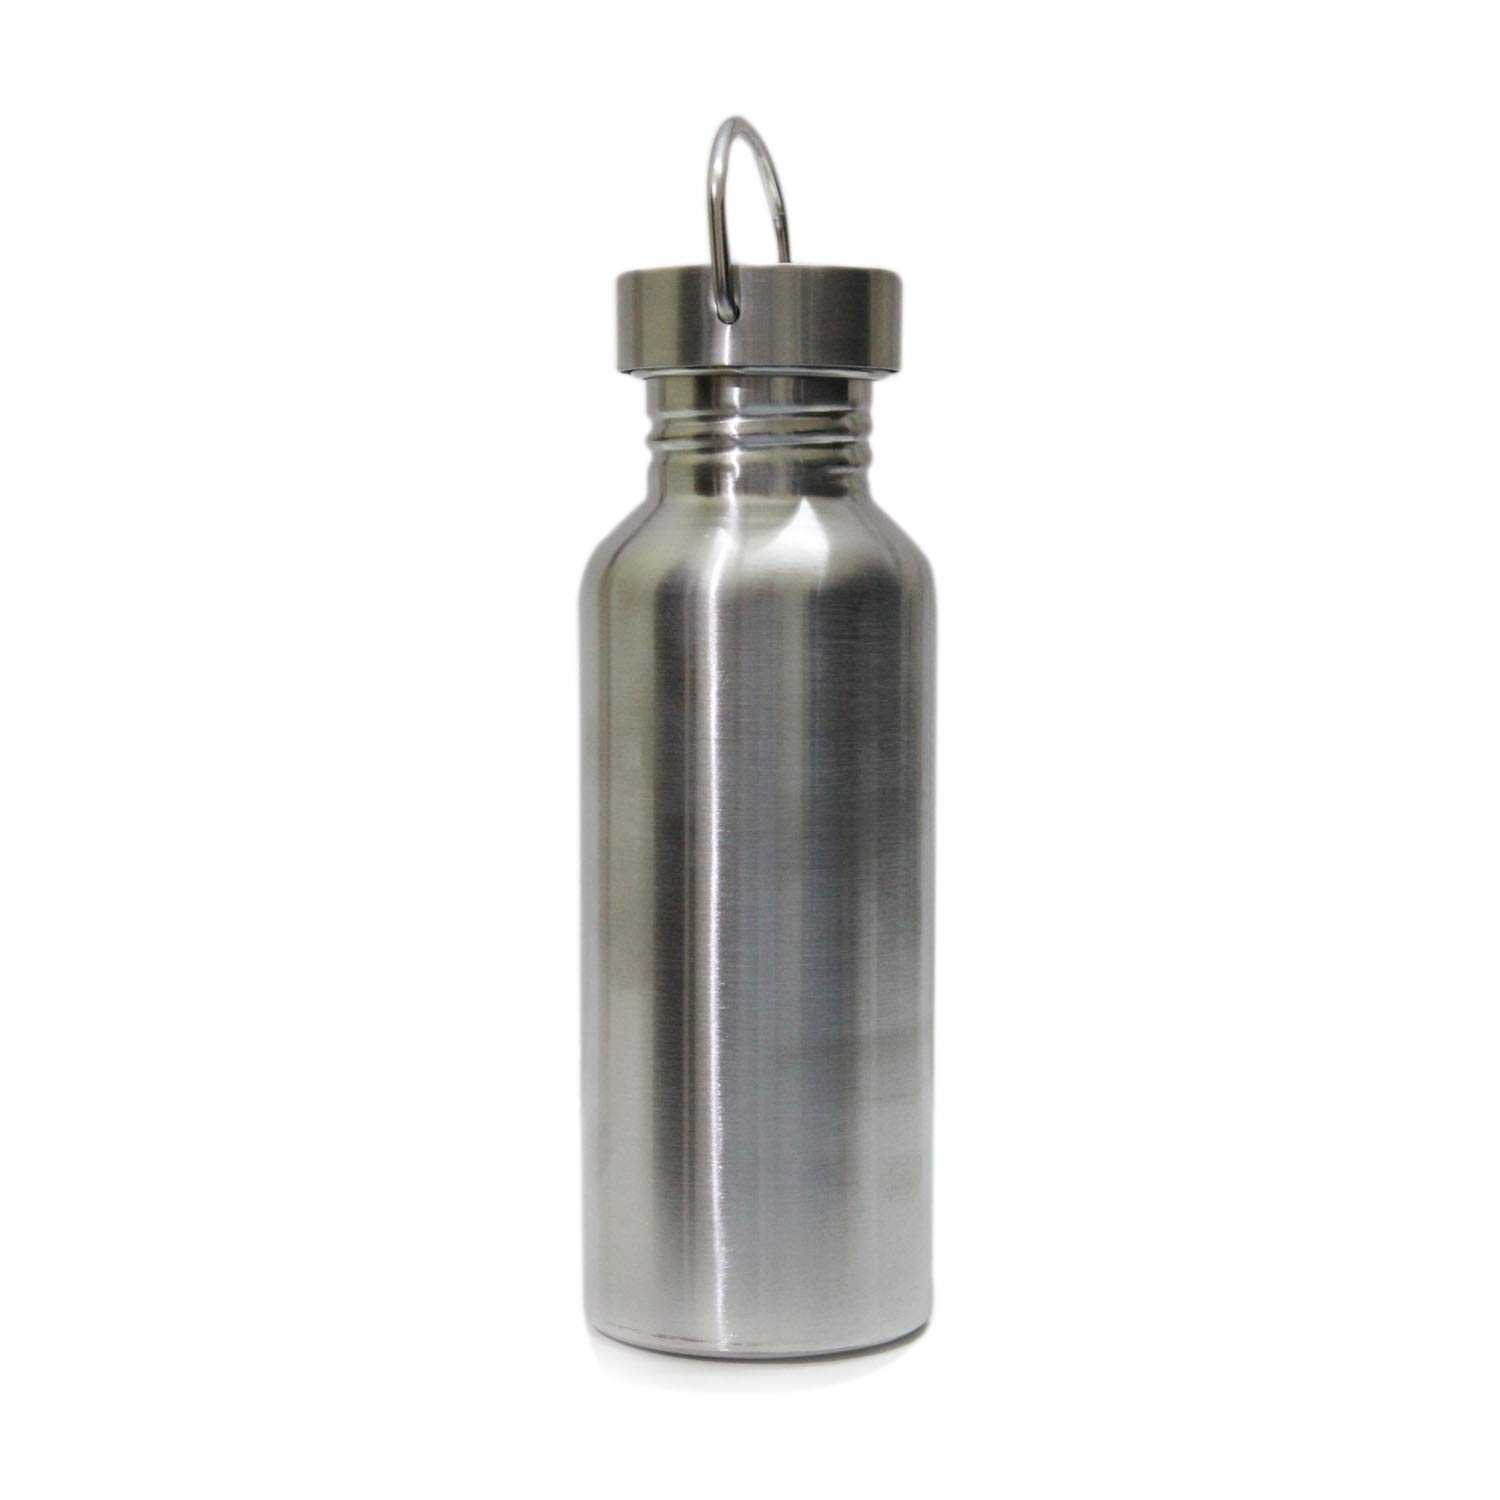 Goldtree Stainless Steel Water Bottle 550 Ml - 1 Pc